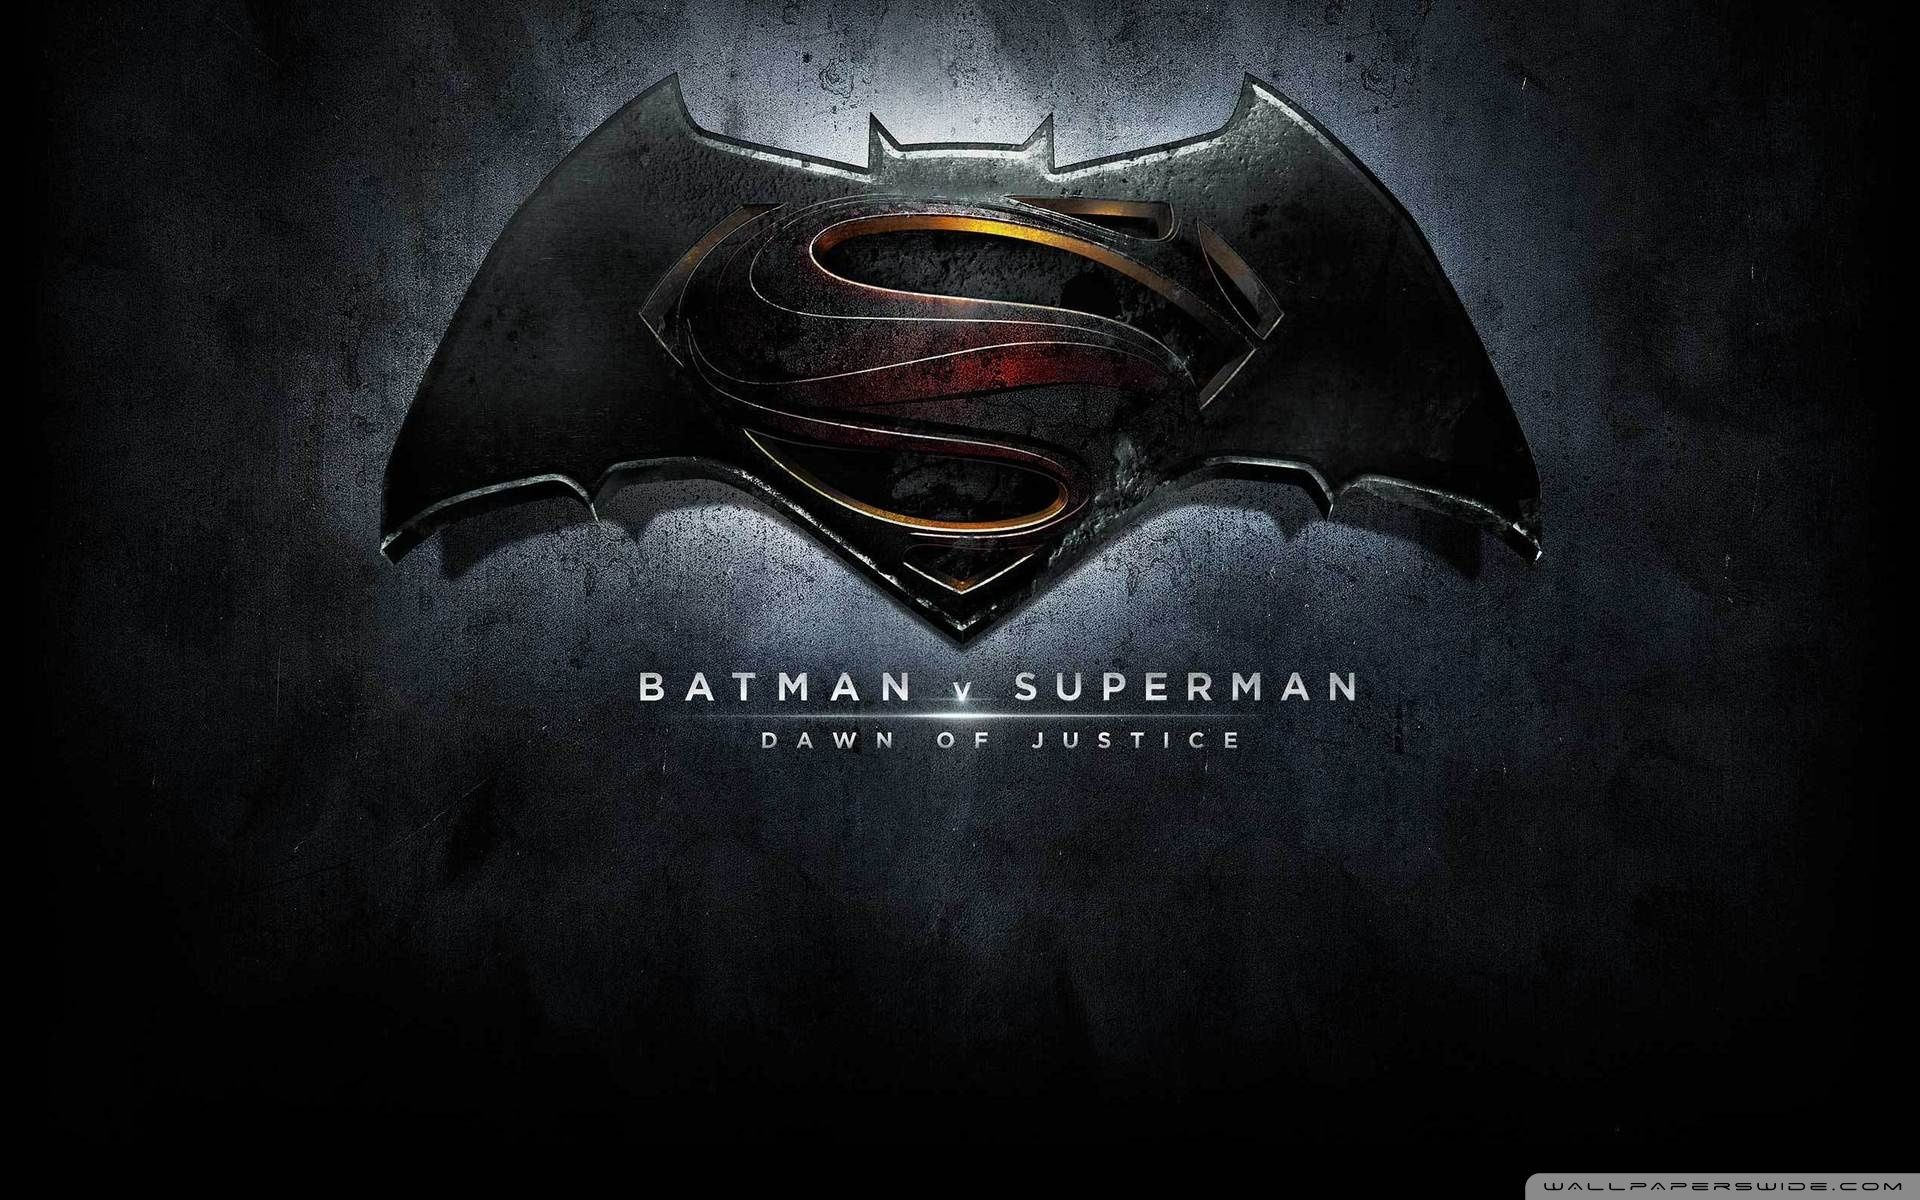 62 Best Free Batman Vs Superman Wallpapers Wallpaperaccess